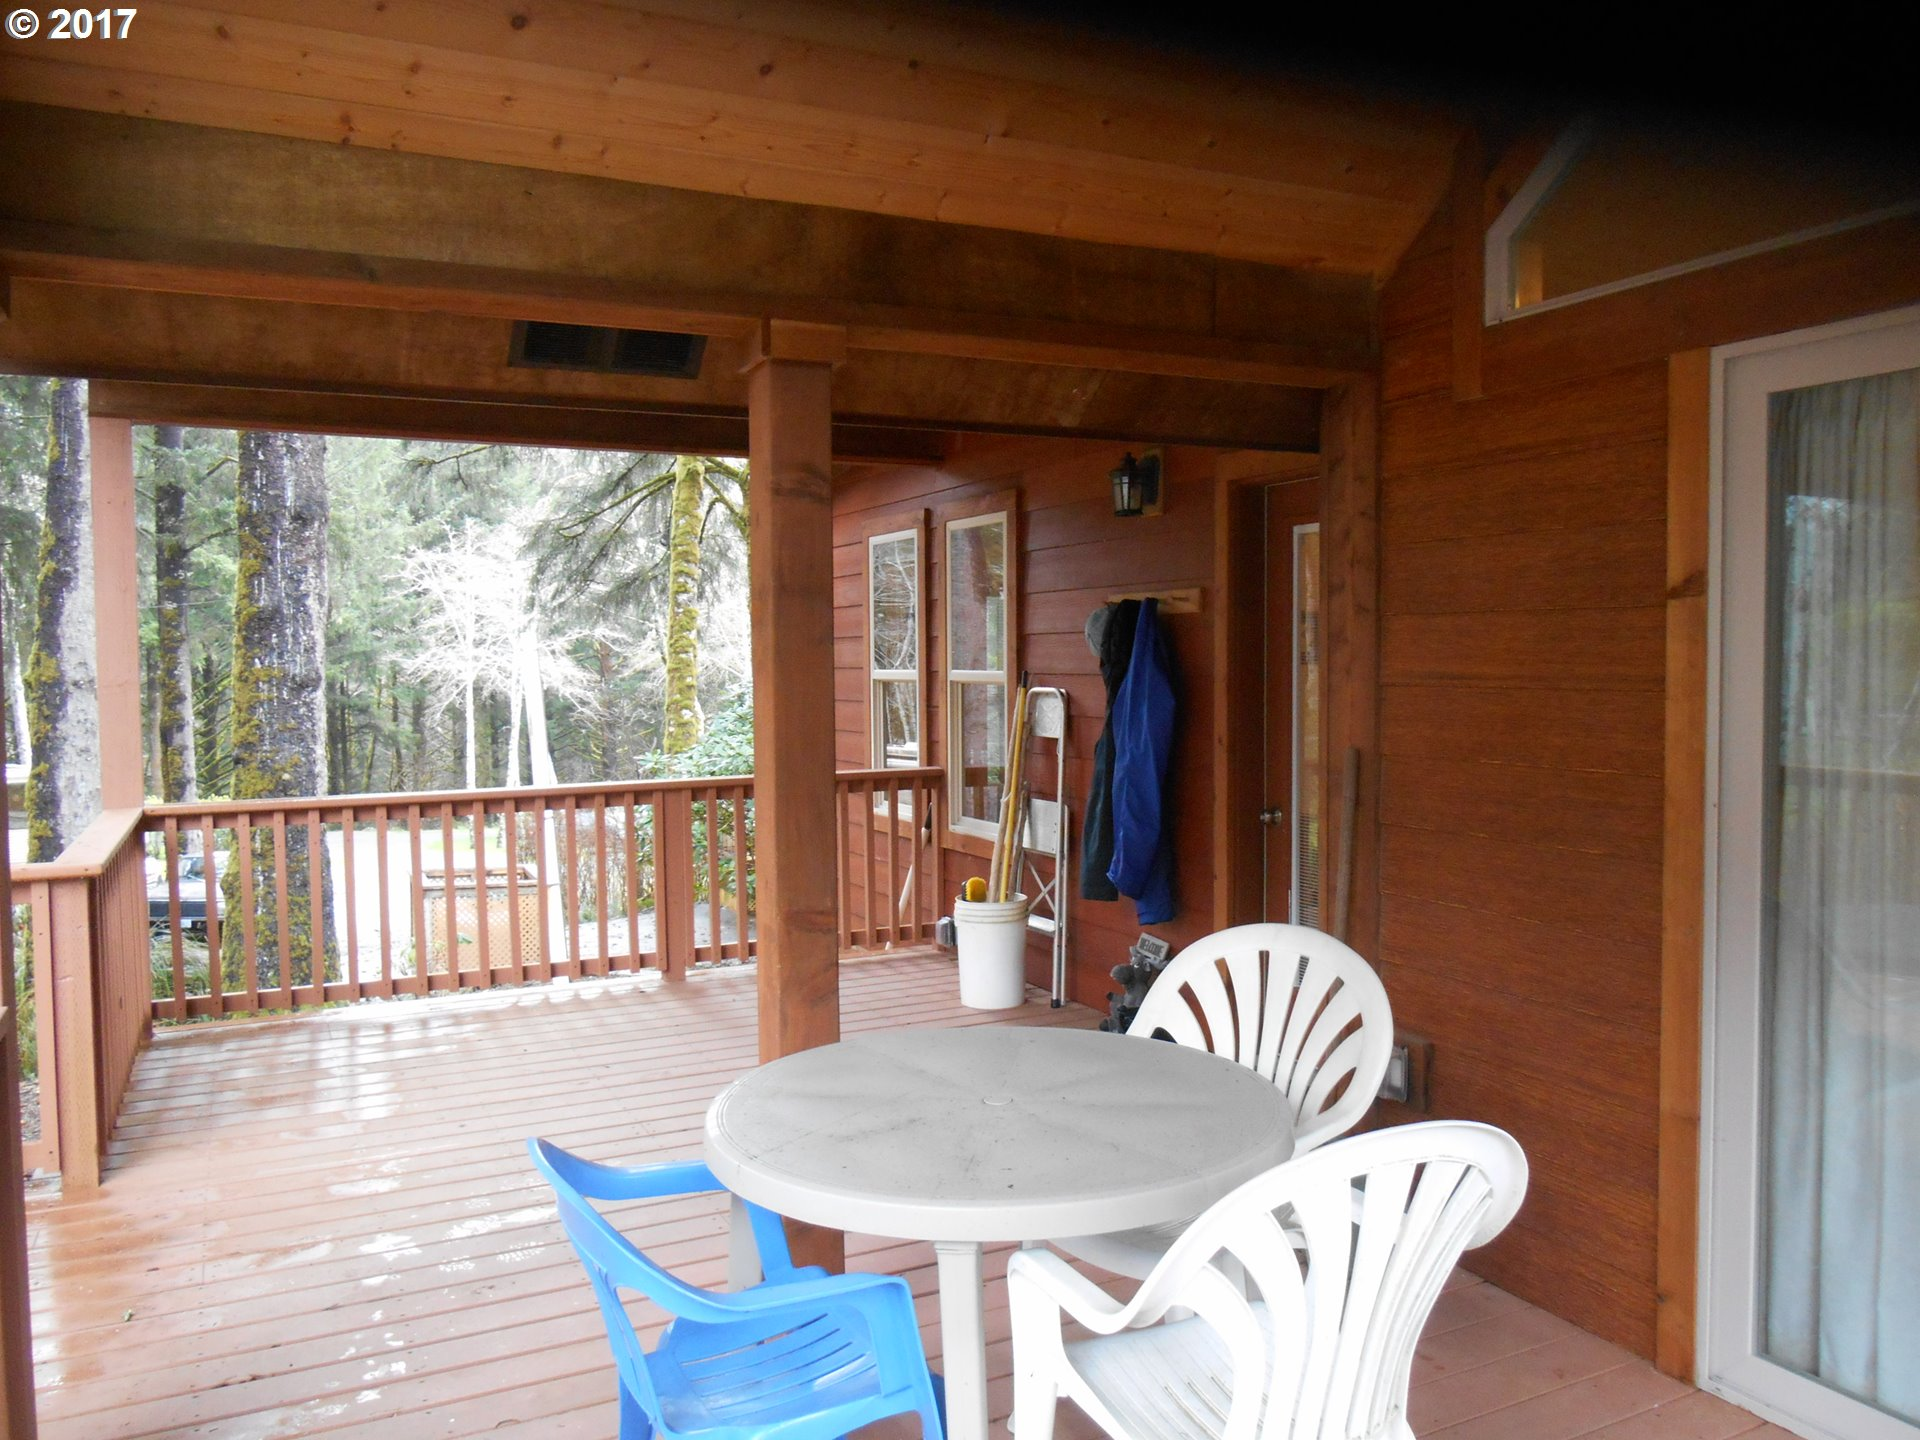 612 sq. ft 1 bedrooms 1 bathrooms  House For Sale,Brookings, OR